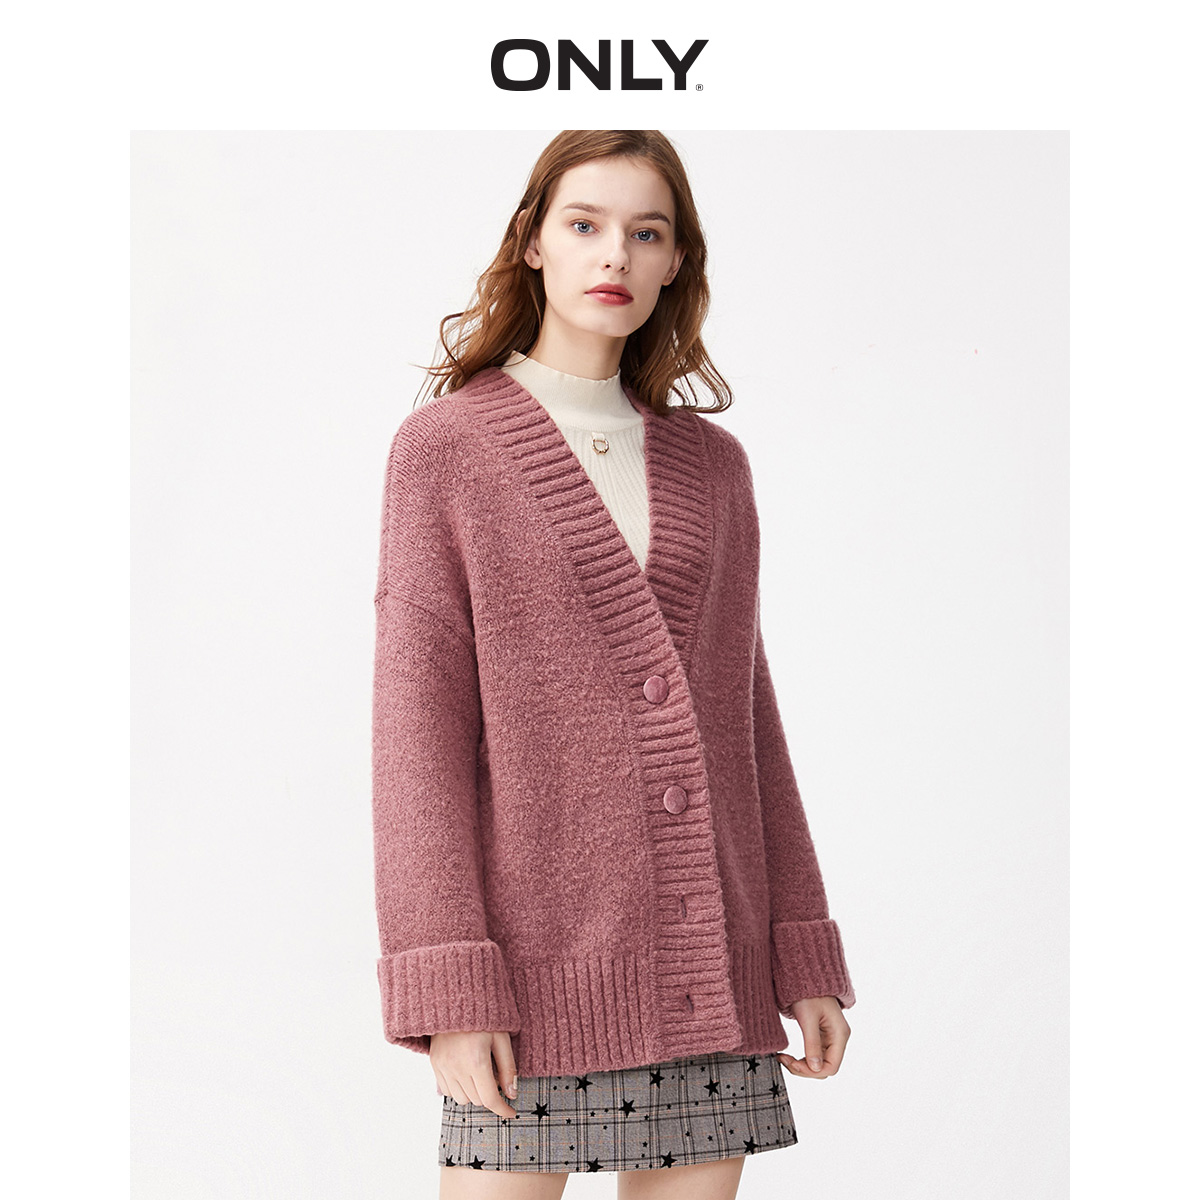 ONLY Women's Loose Fit Cardigan Knit   11933B506